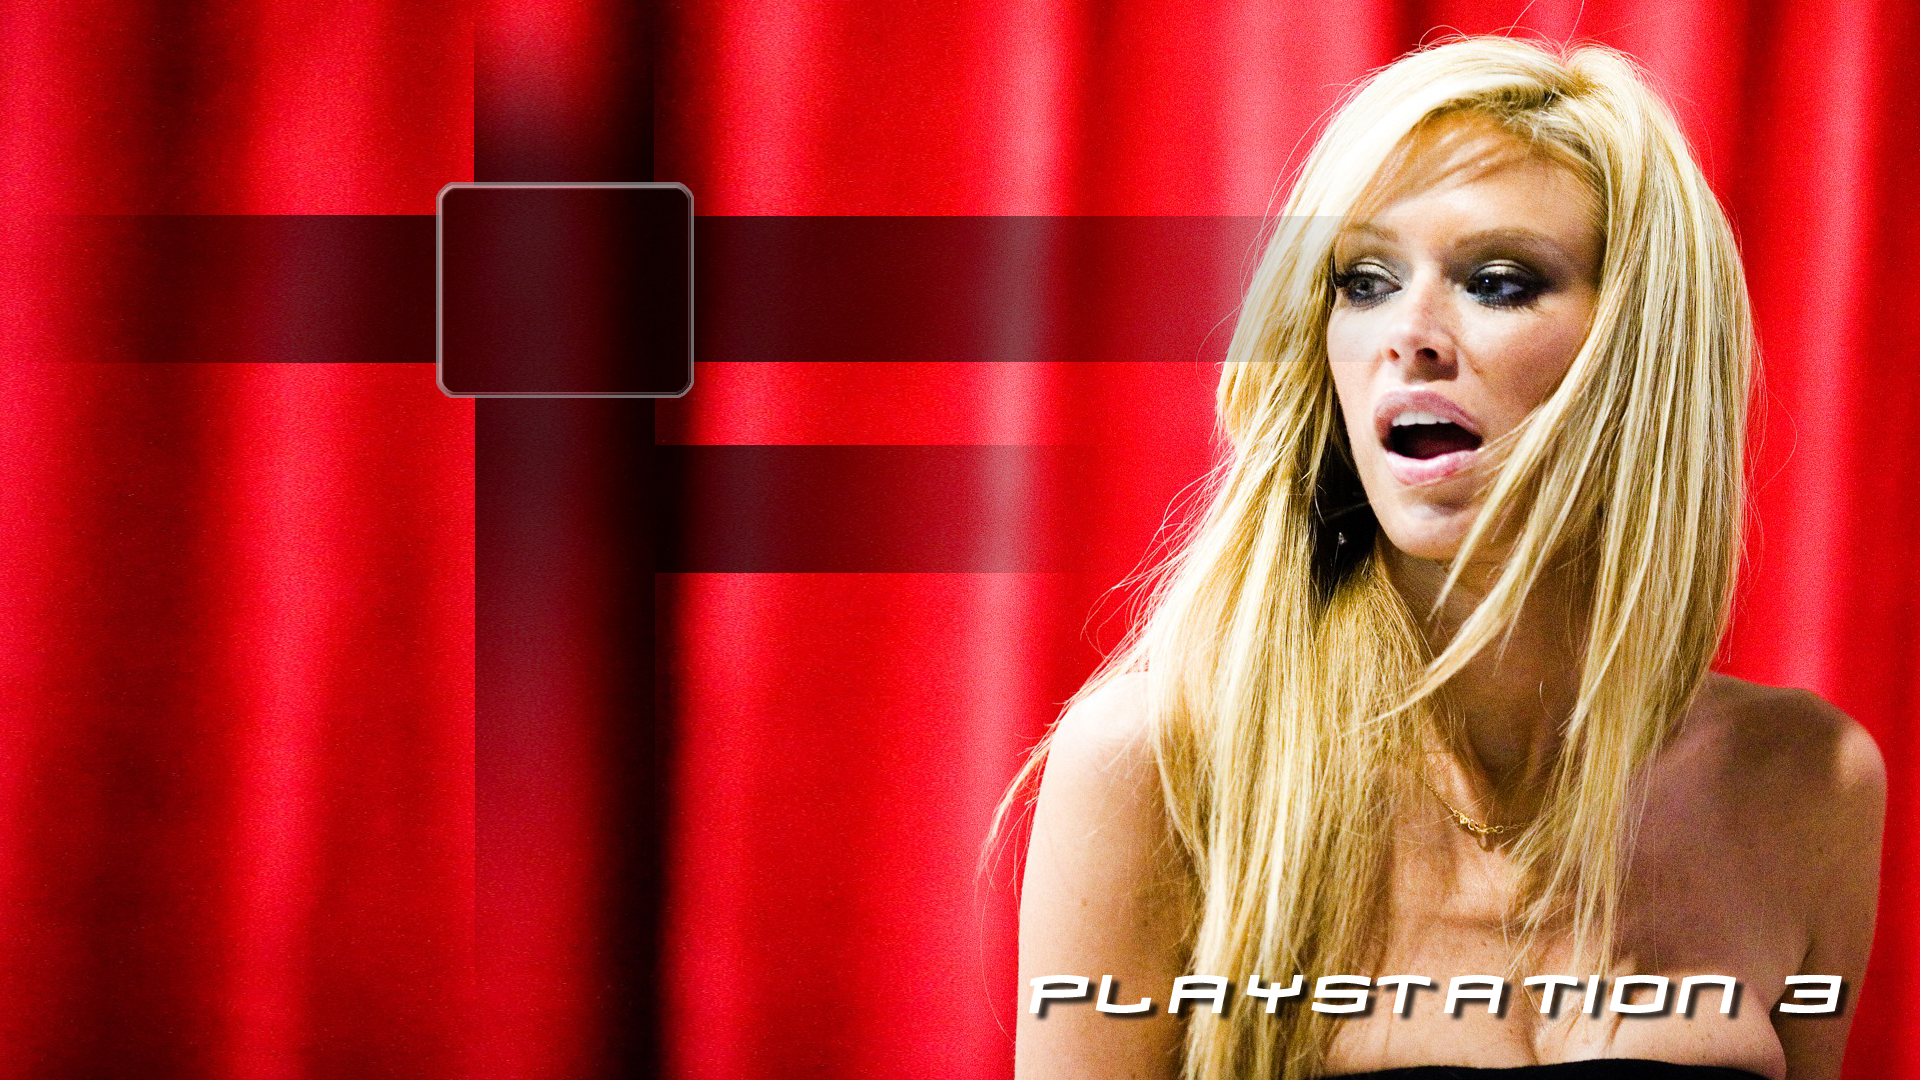 Jenna Jameson Wallpapers